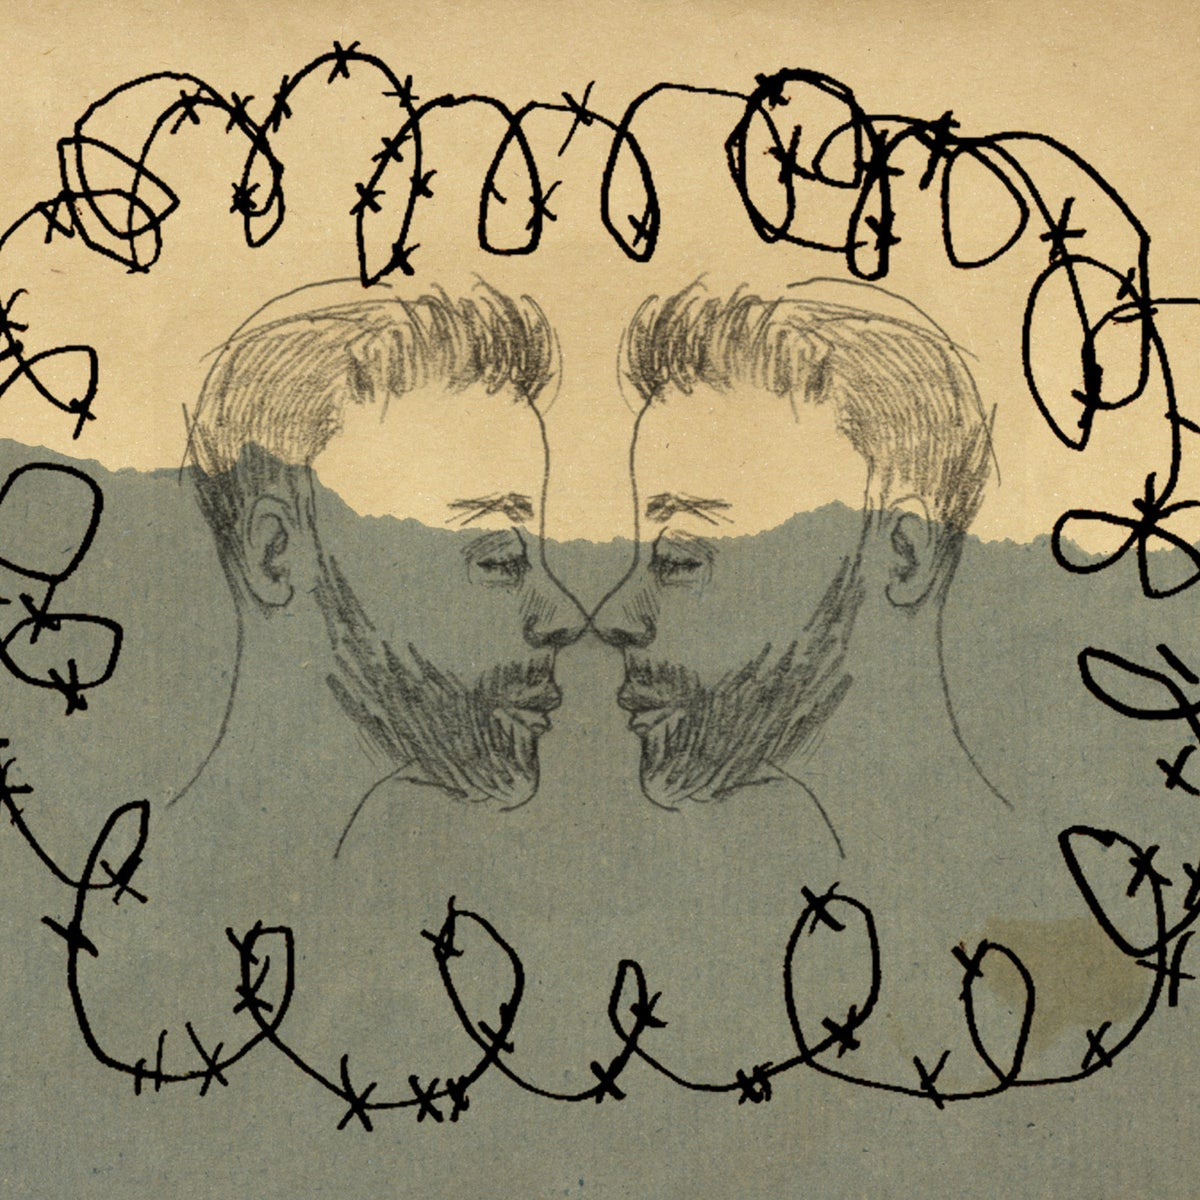 An illustration of two men facing each other, framed by barbed wire.